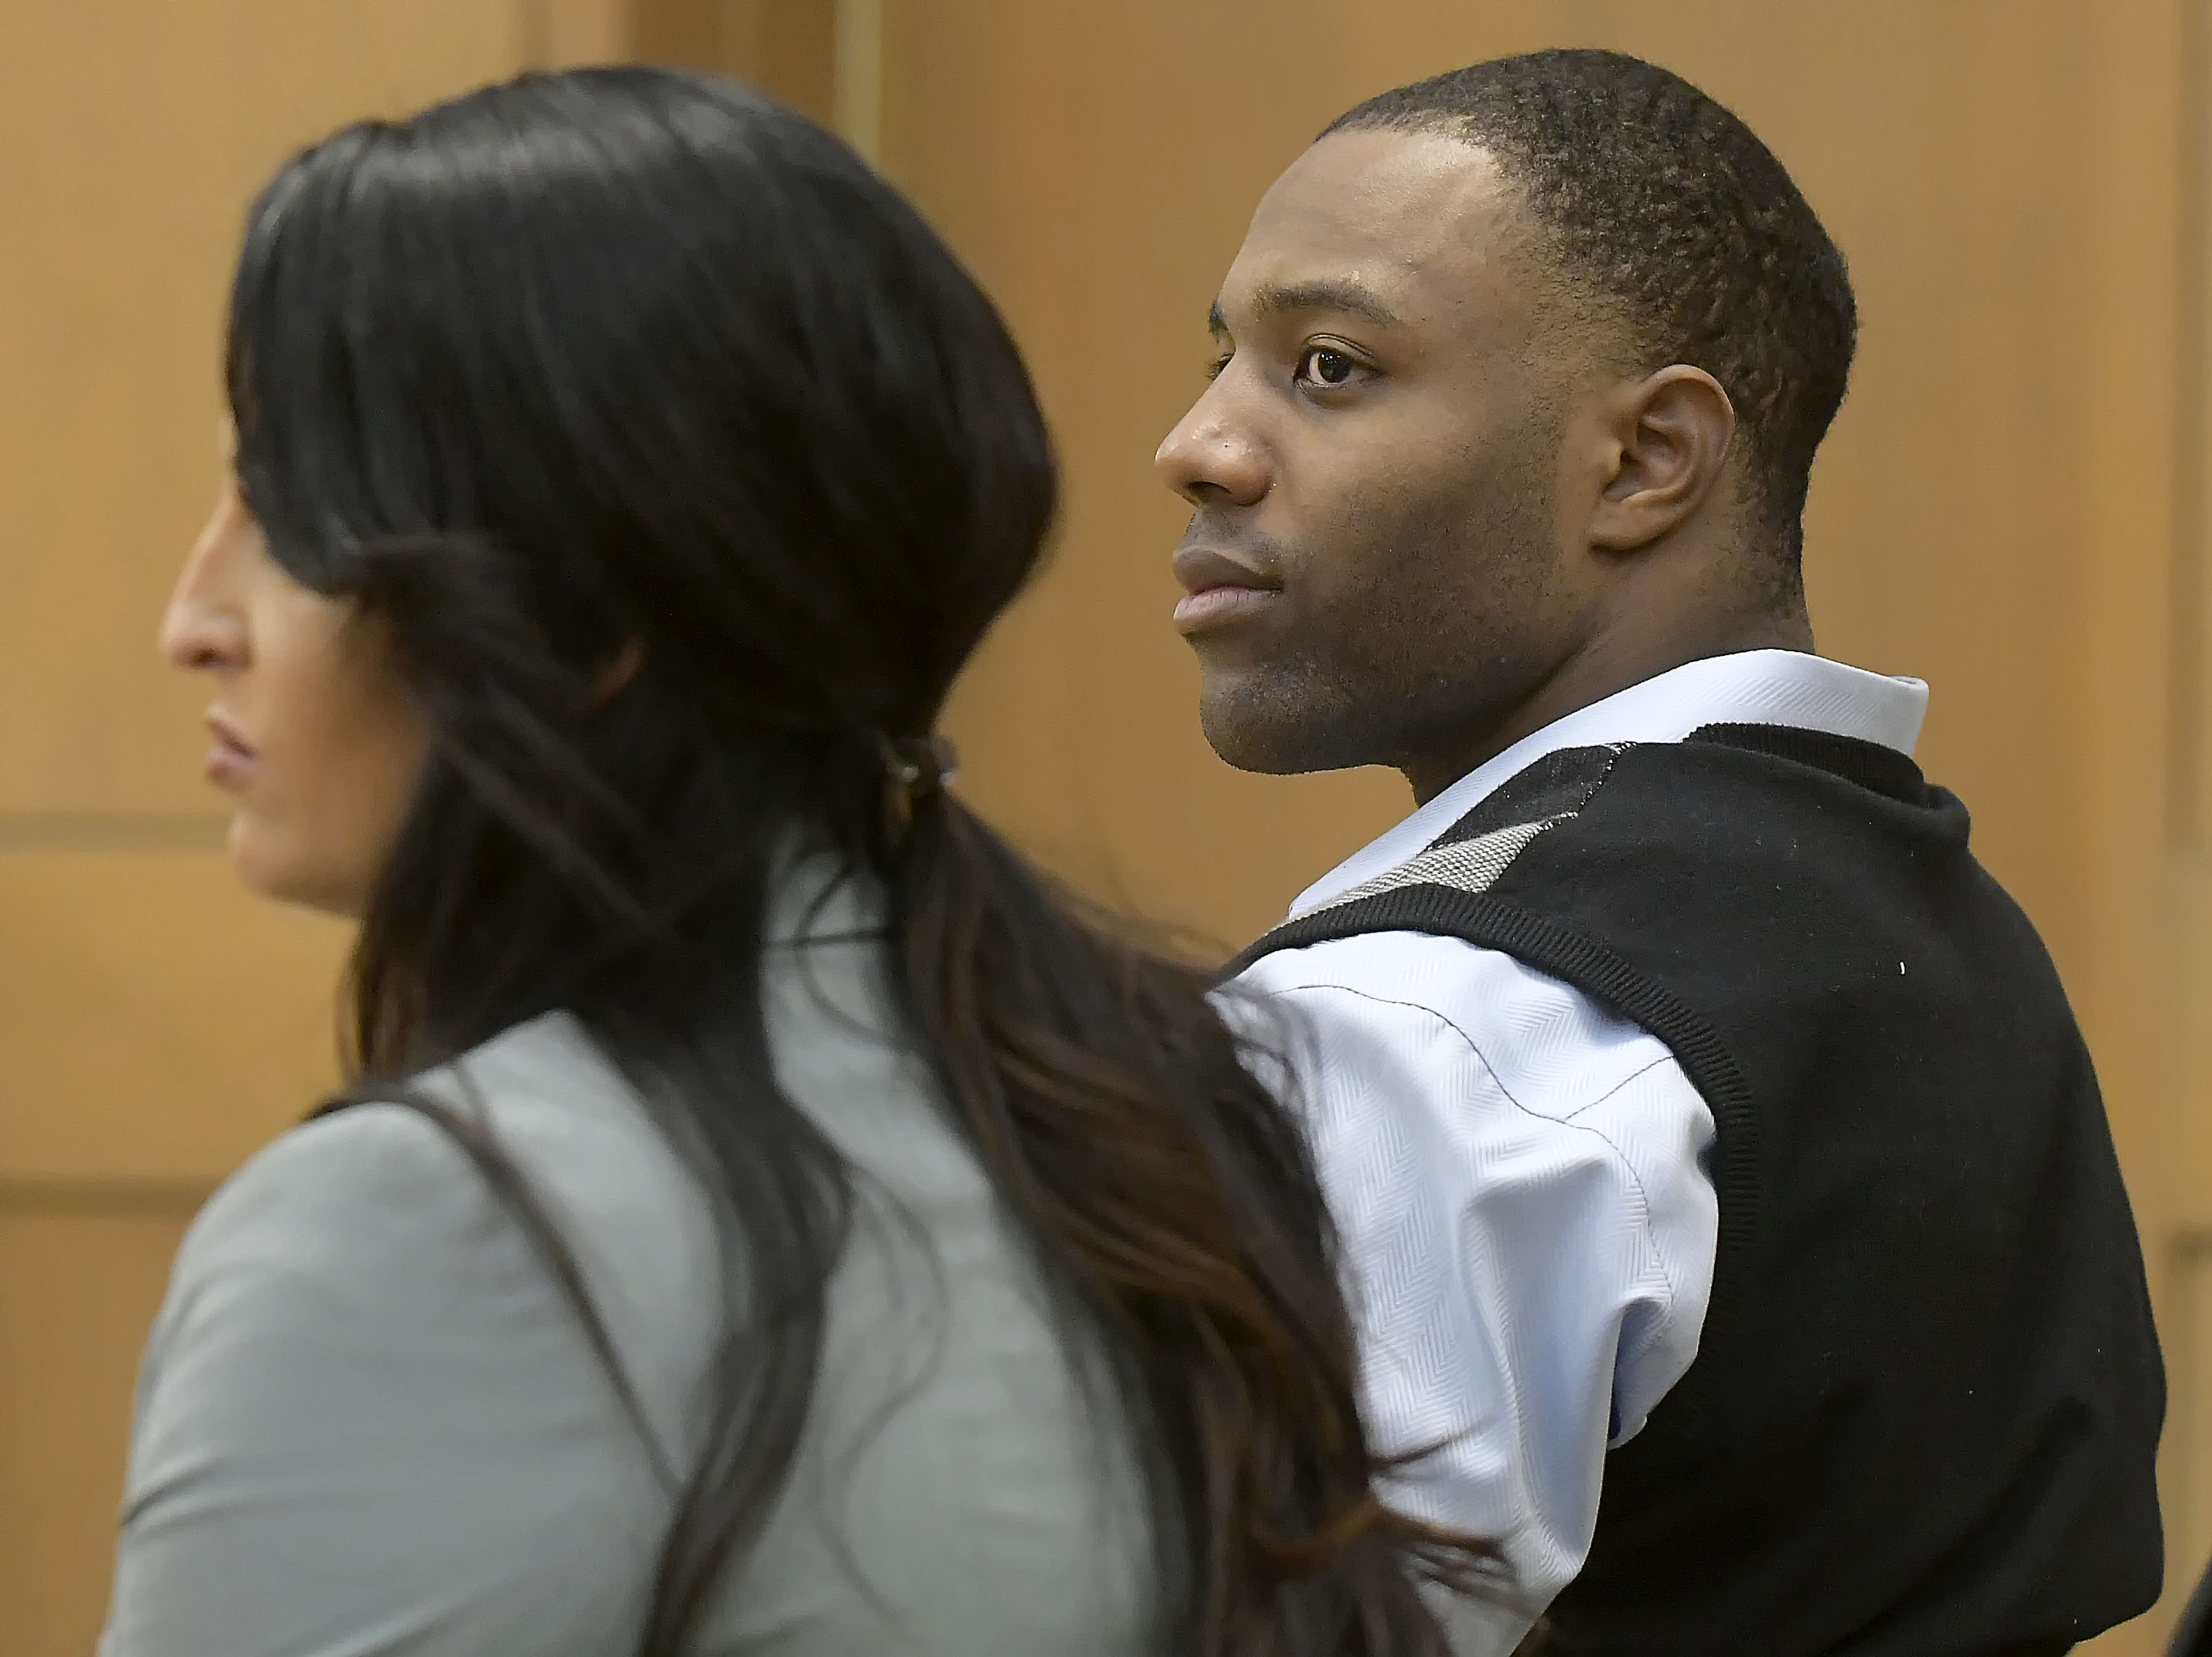 Torrey Green and his lawyer, Skye Lazaro, listen on Wednesday, Jan. 16, 2019, as a 1st District judge announces closing arguments in Green's rape trial will be held on Thursday in Brigham City.